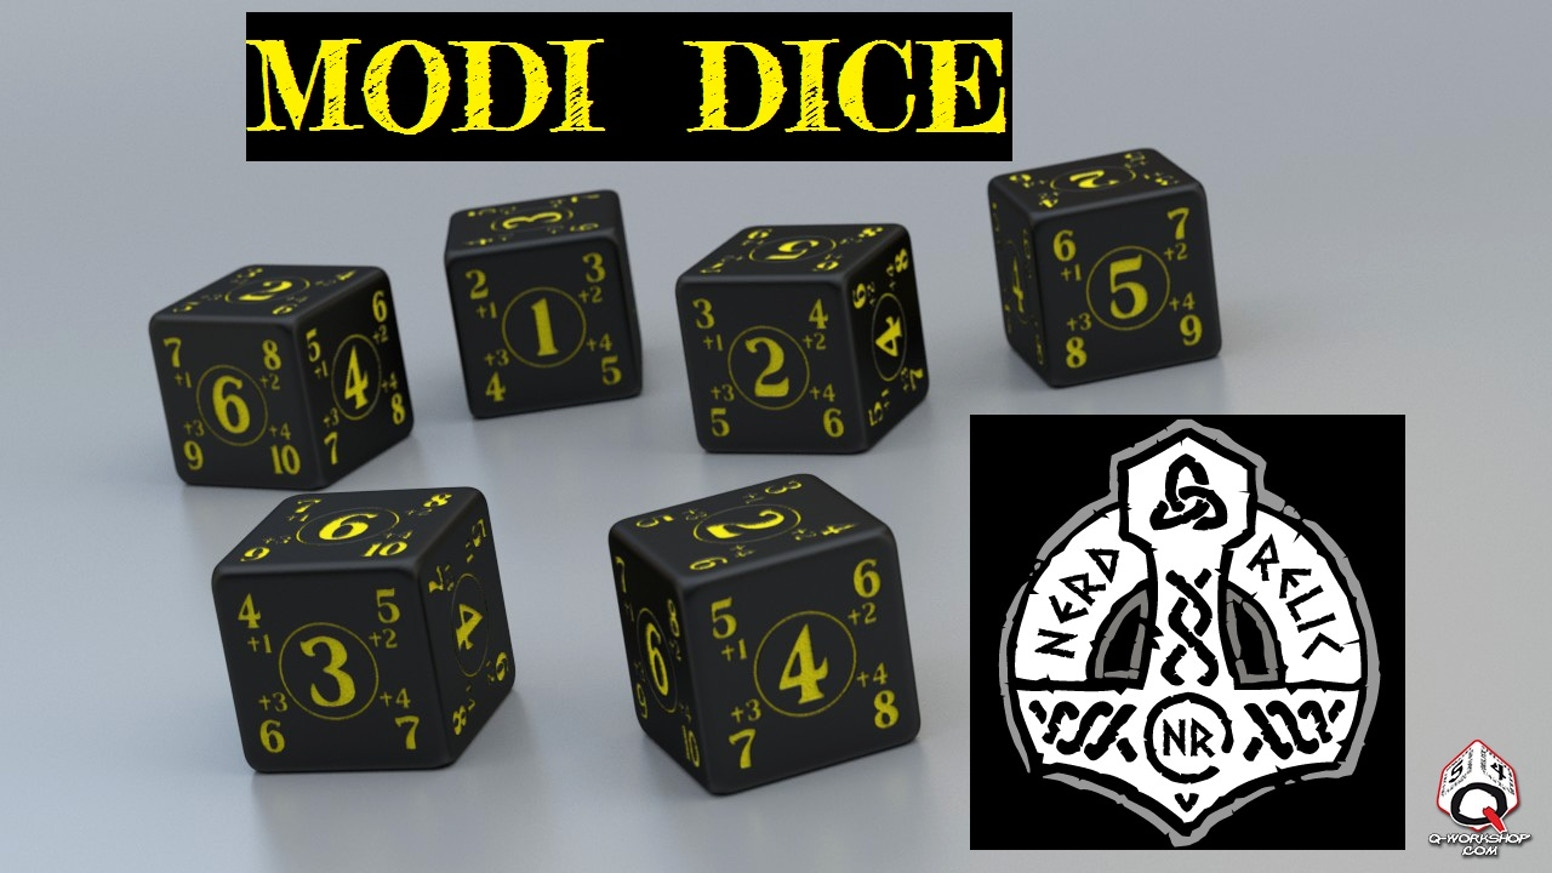 Welcome to Modi Dice, we've come up with a dice design (Manufactured by Q-Workshop) that incorporates a plus modifier built in.